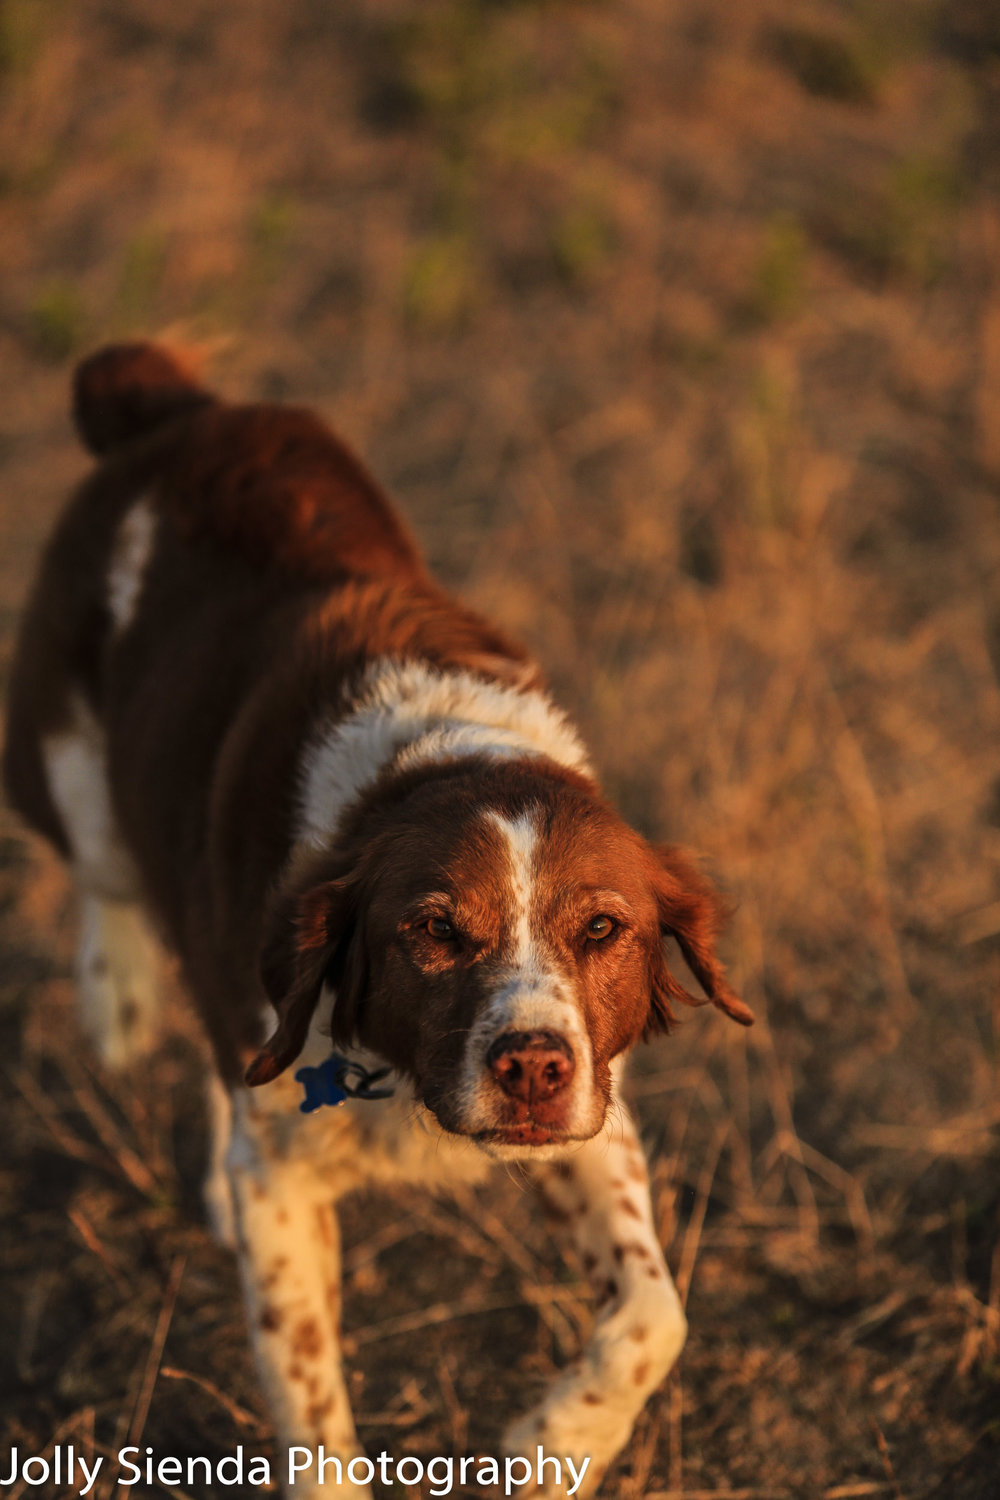 Chestnut color Crocker Spaniel Hunting dog on a field at sunset